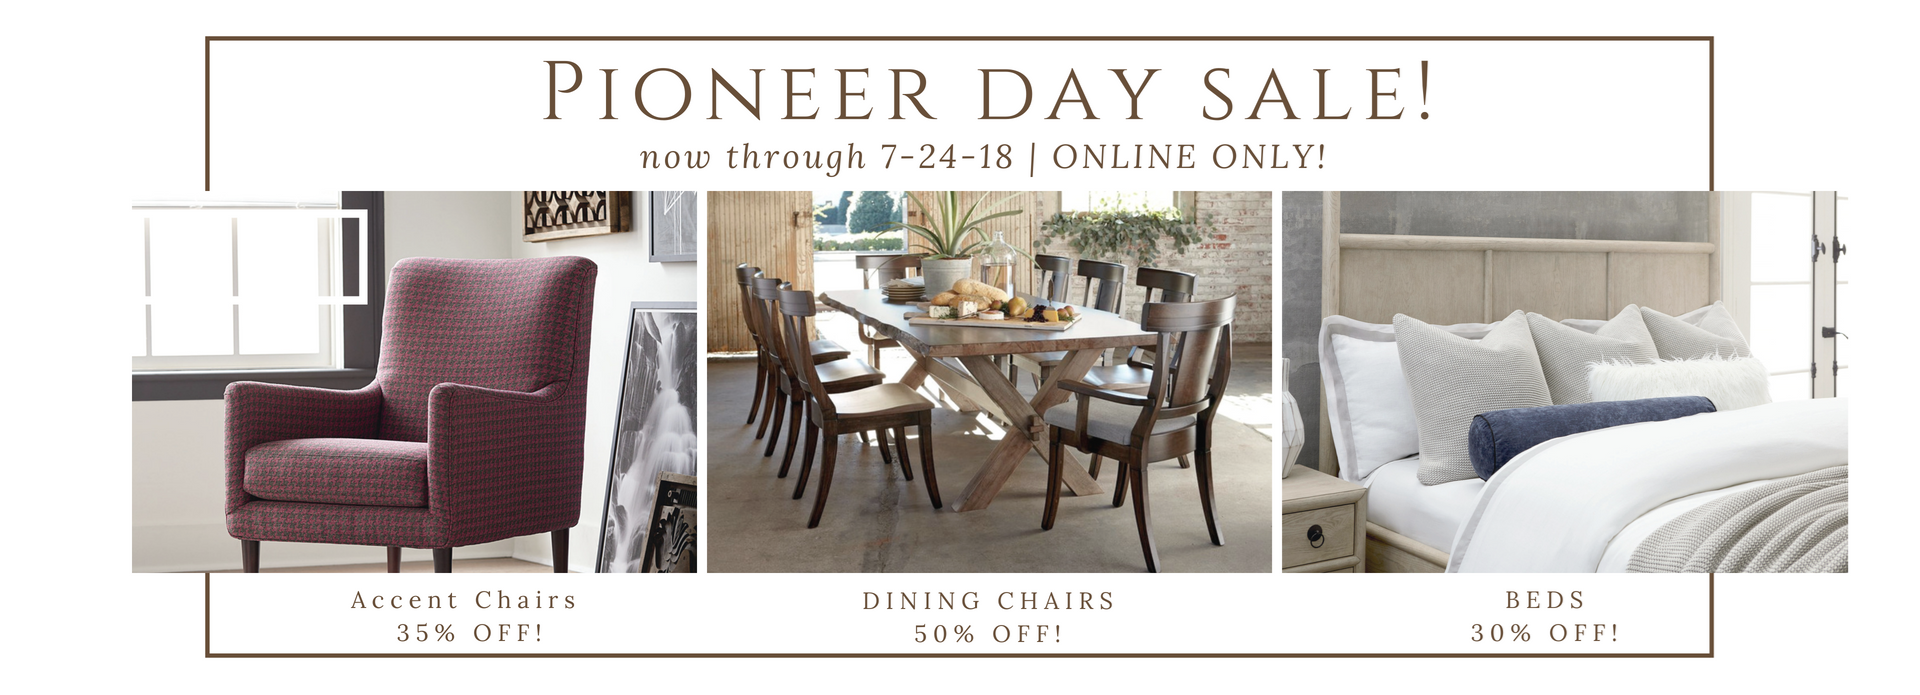 Pioneer day sale image